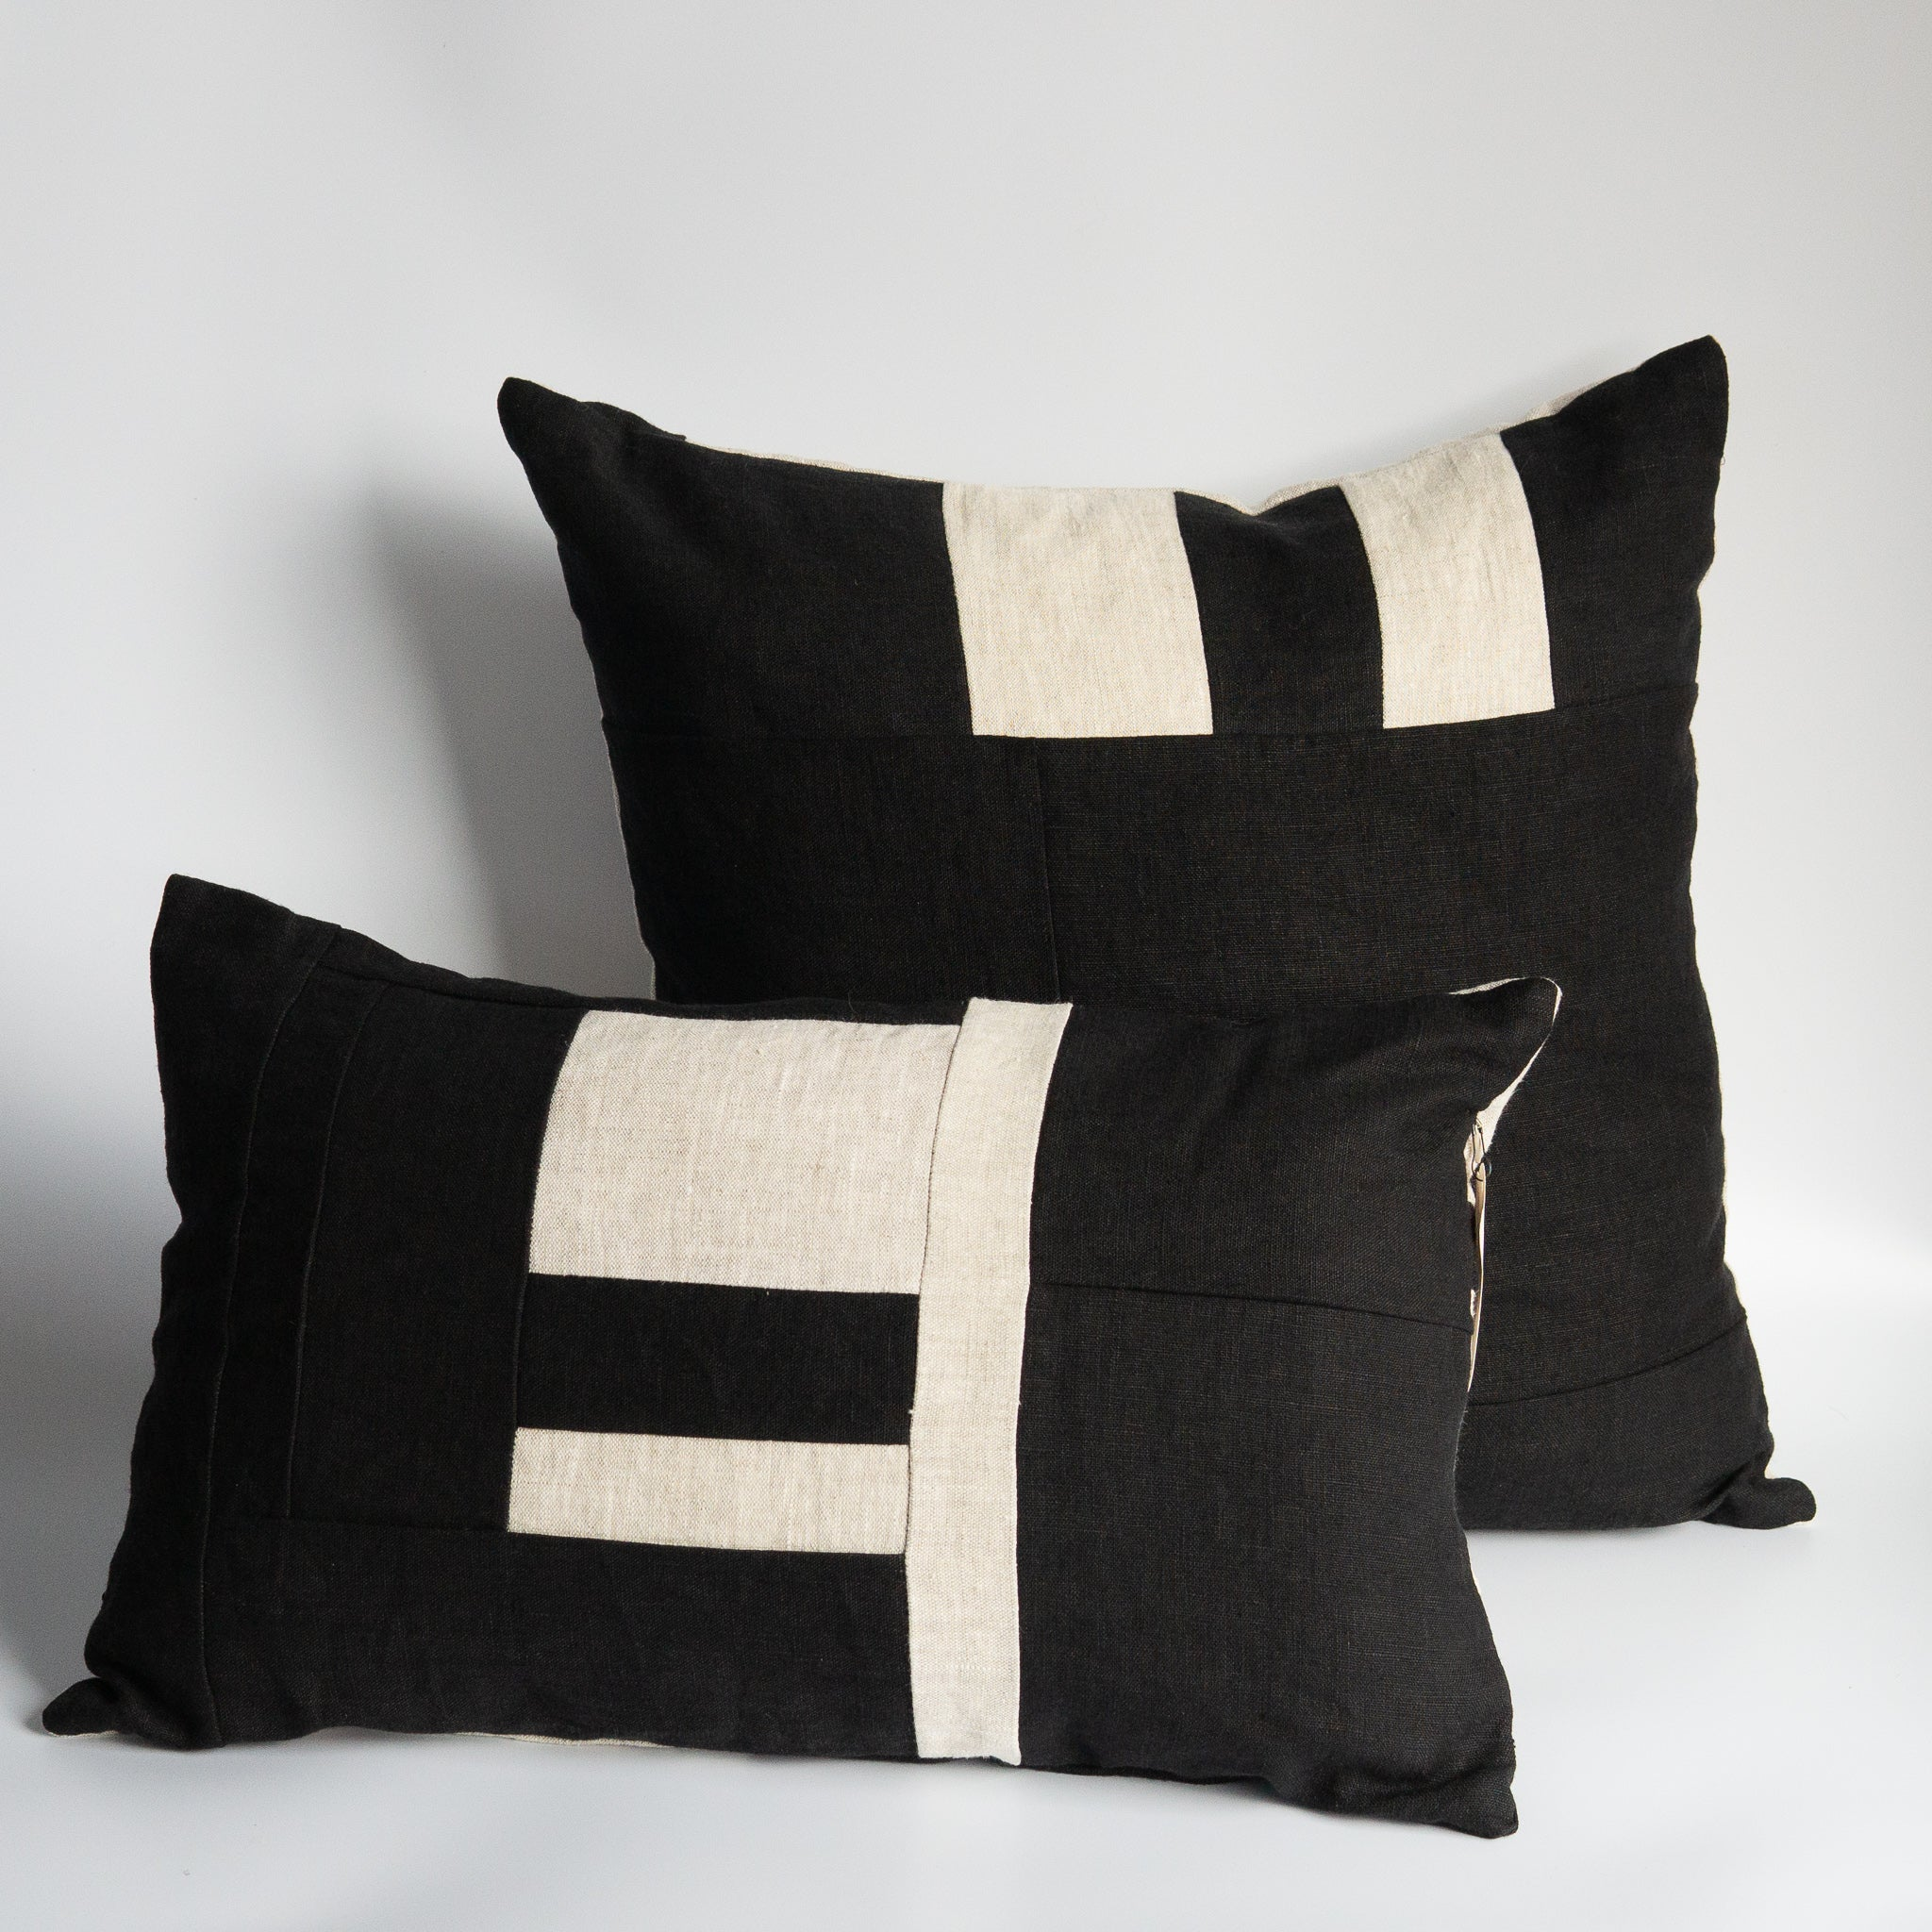 Mallow Soft Goods: Reversible Black/Flax Linen Pillows